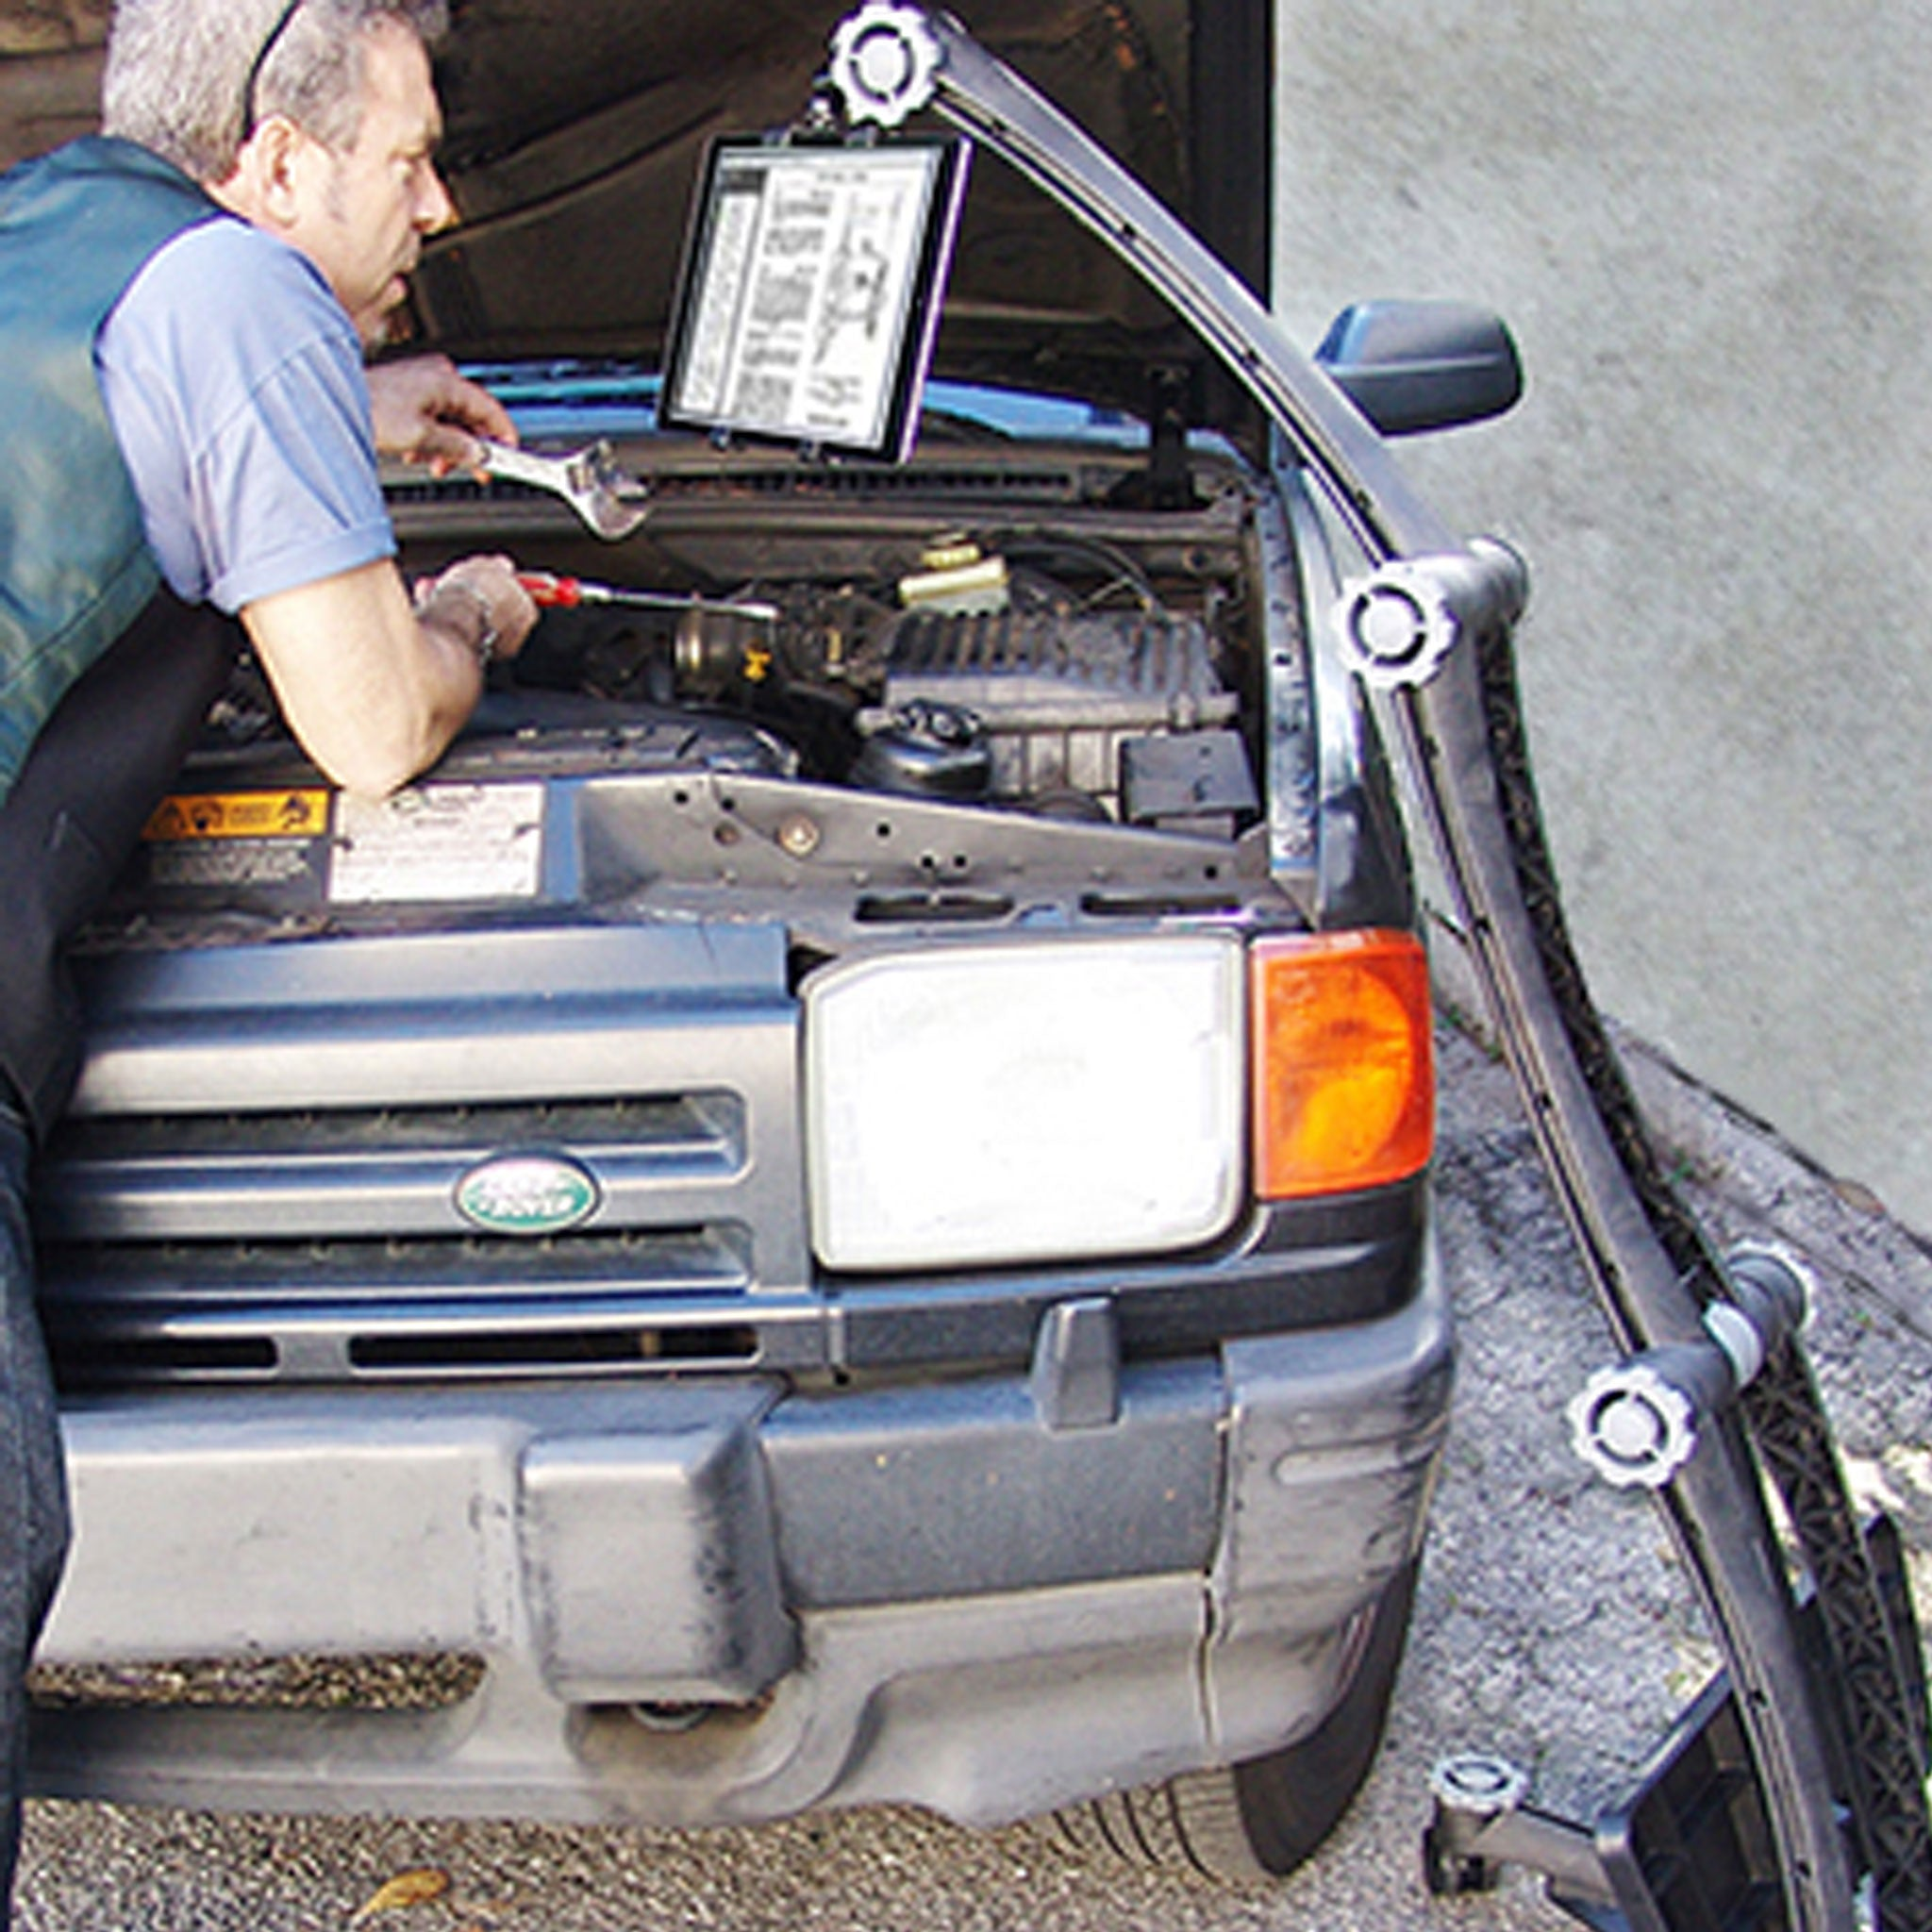 Image of a man performing repairs on his car using the ZStand AllStar to hold his iPad showing repair instructions.